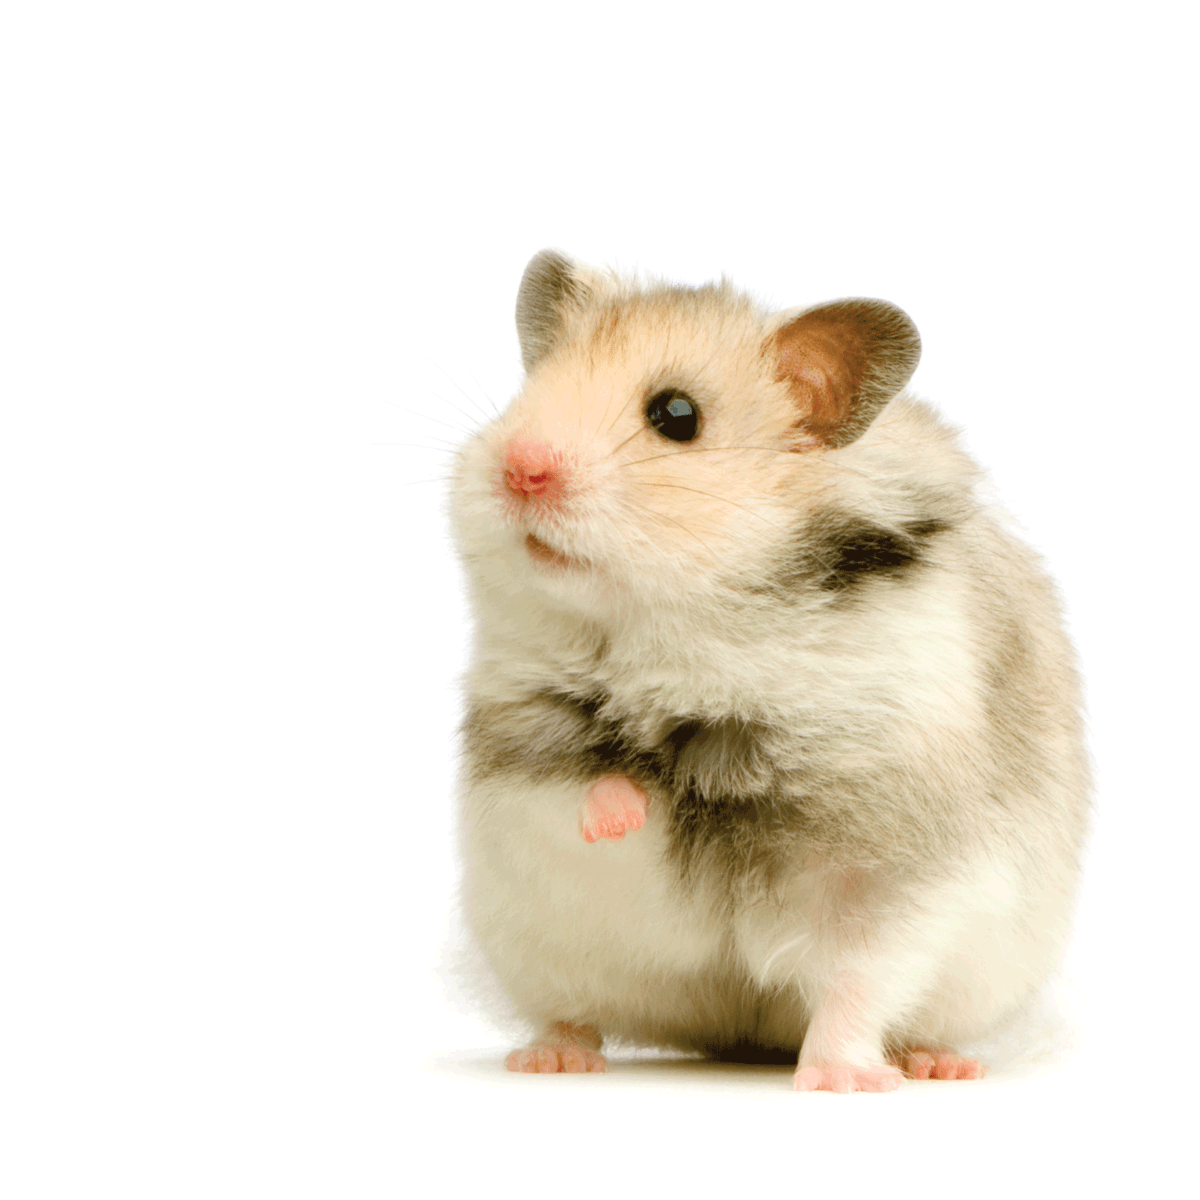 cute hamster standing steadily on a white background